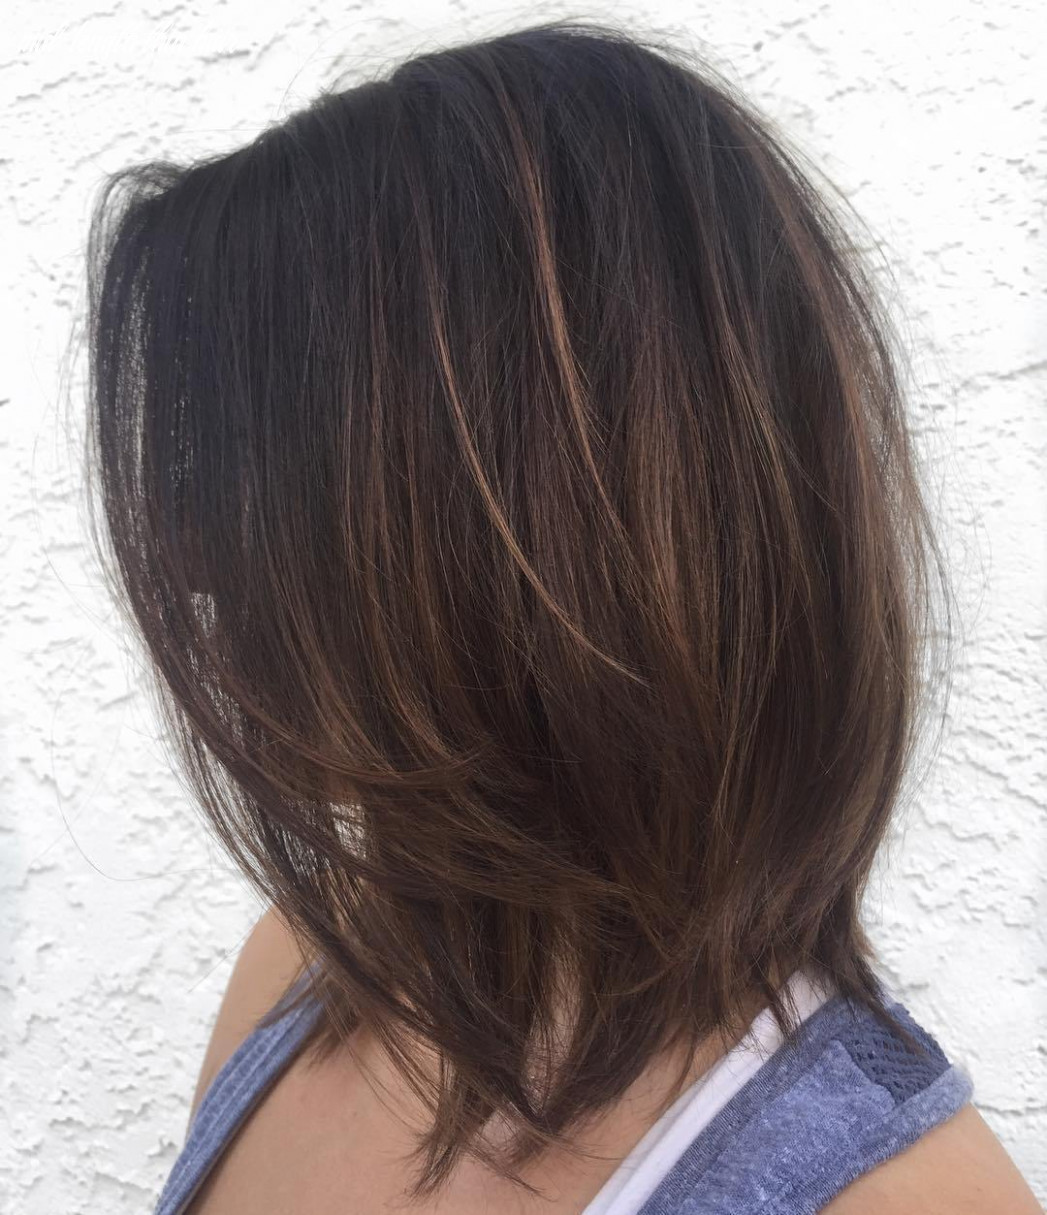 12 perfect medium length hairstyles for thin hair in 12 mid length thin hair